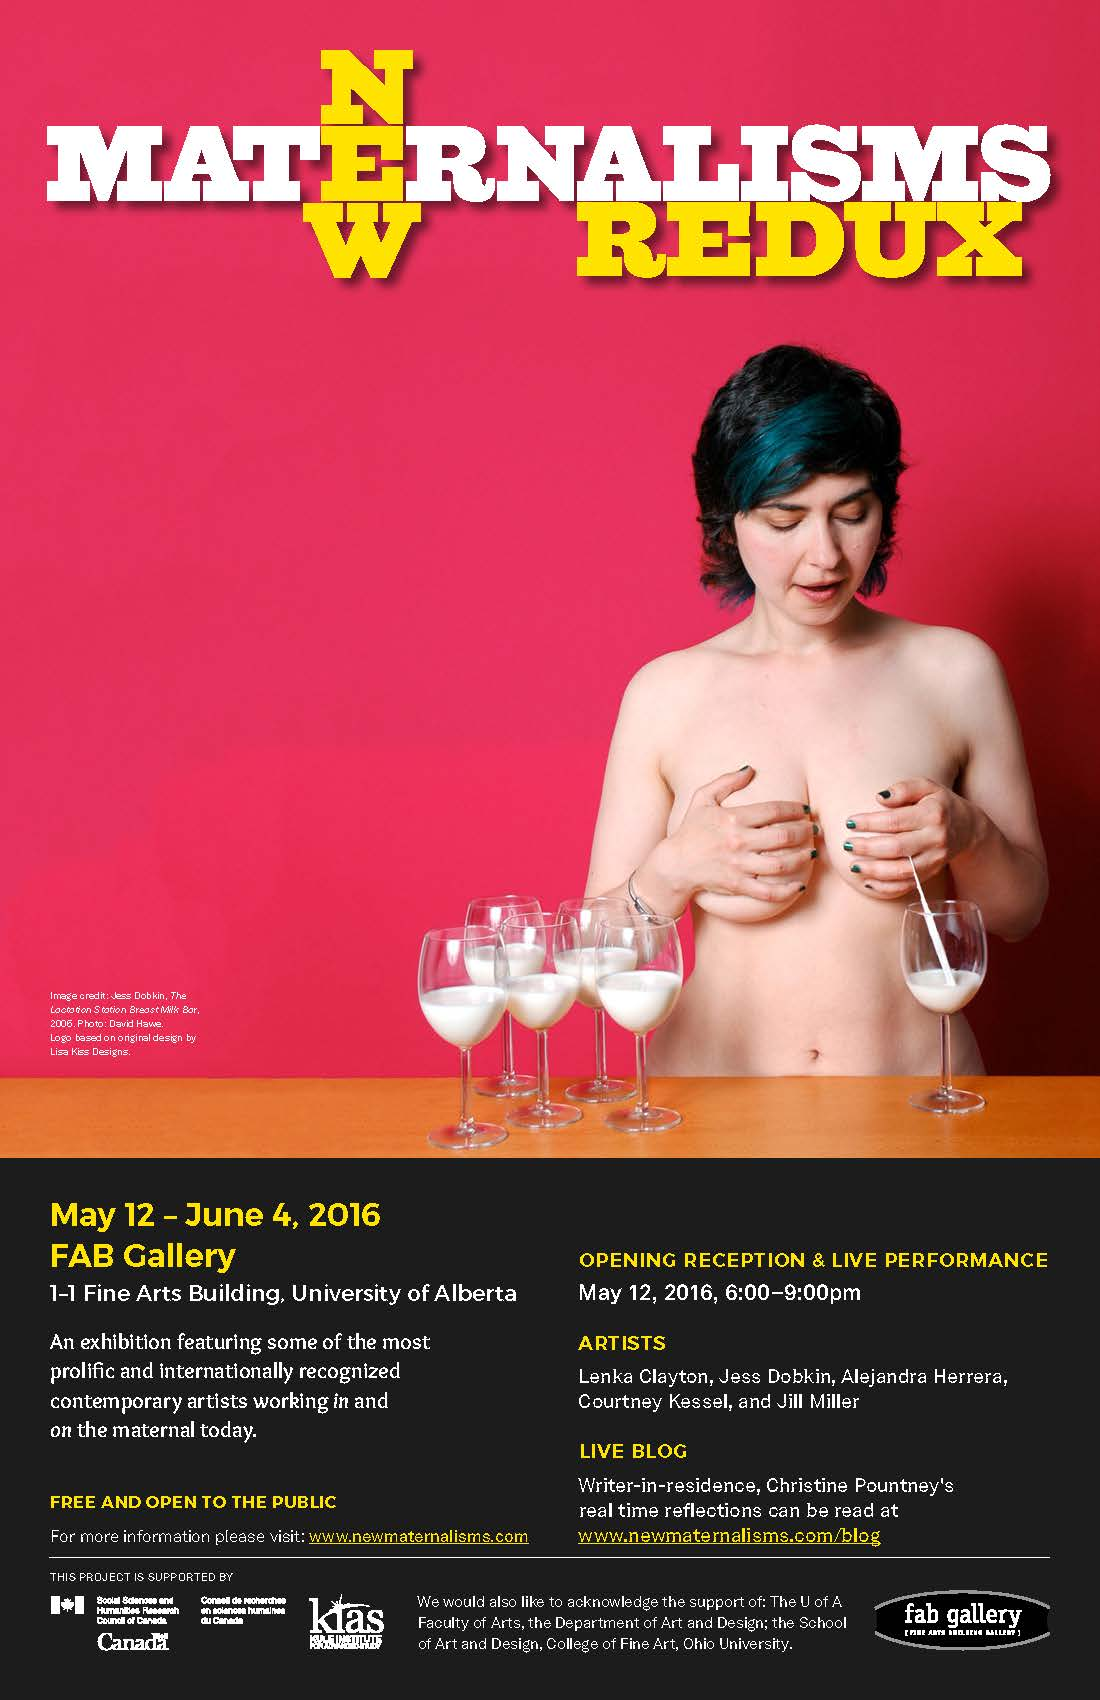 Poster for the 2016 exhibition 'New Maternalisms Redux' held at the Fine Arts Building Gallery at the University of Alberta.